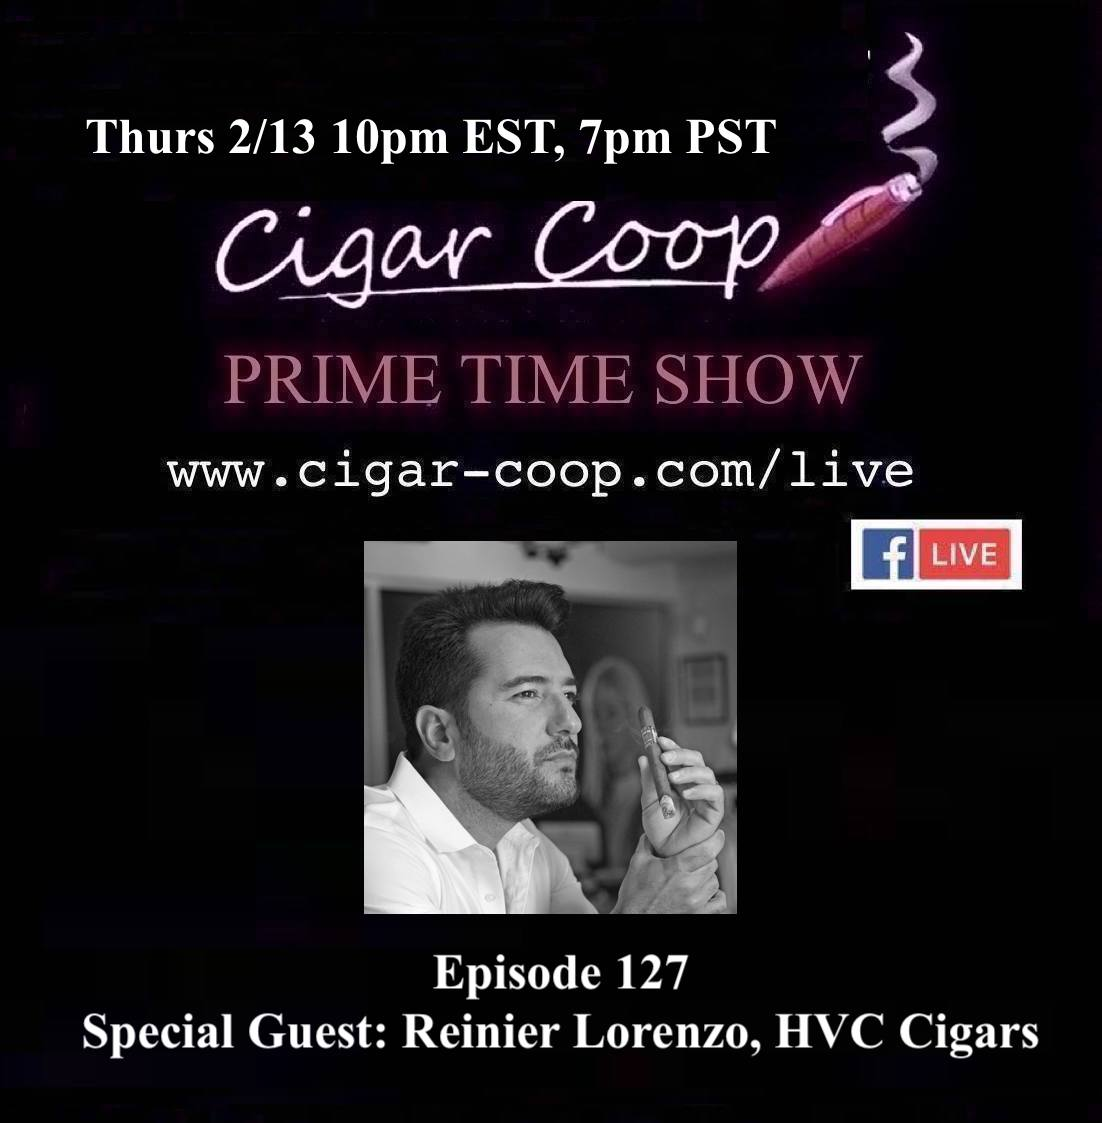 Announcement: Prime Time Episode 127 – Reinier Lorenzo, HVC Cigars